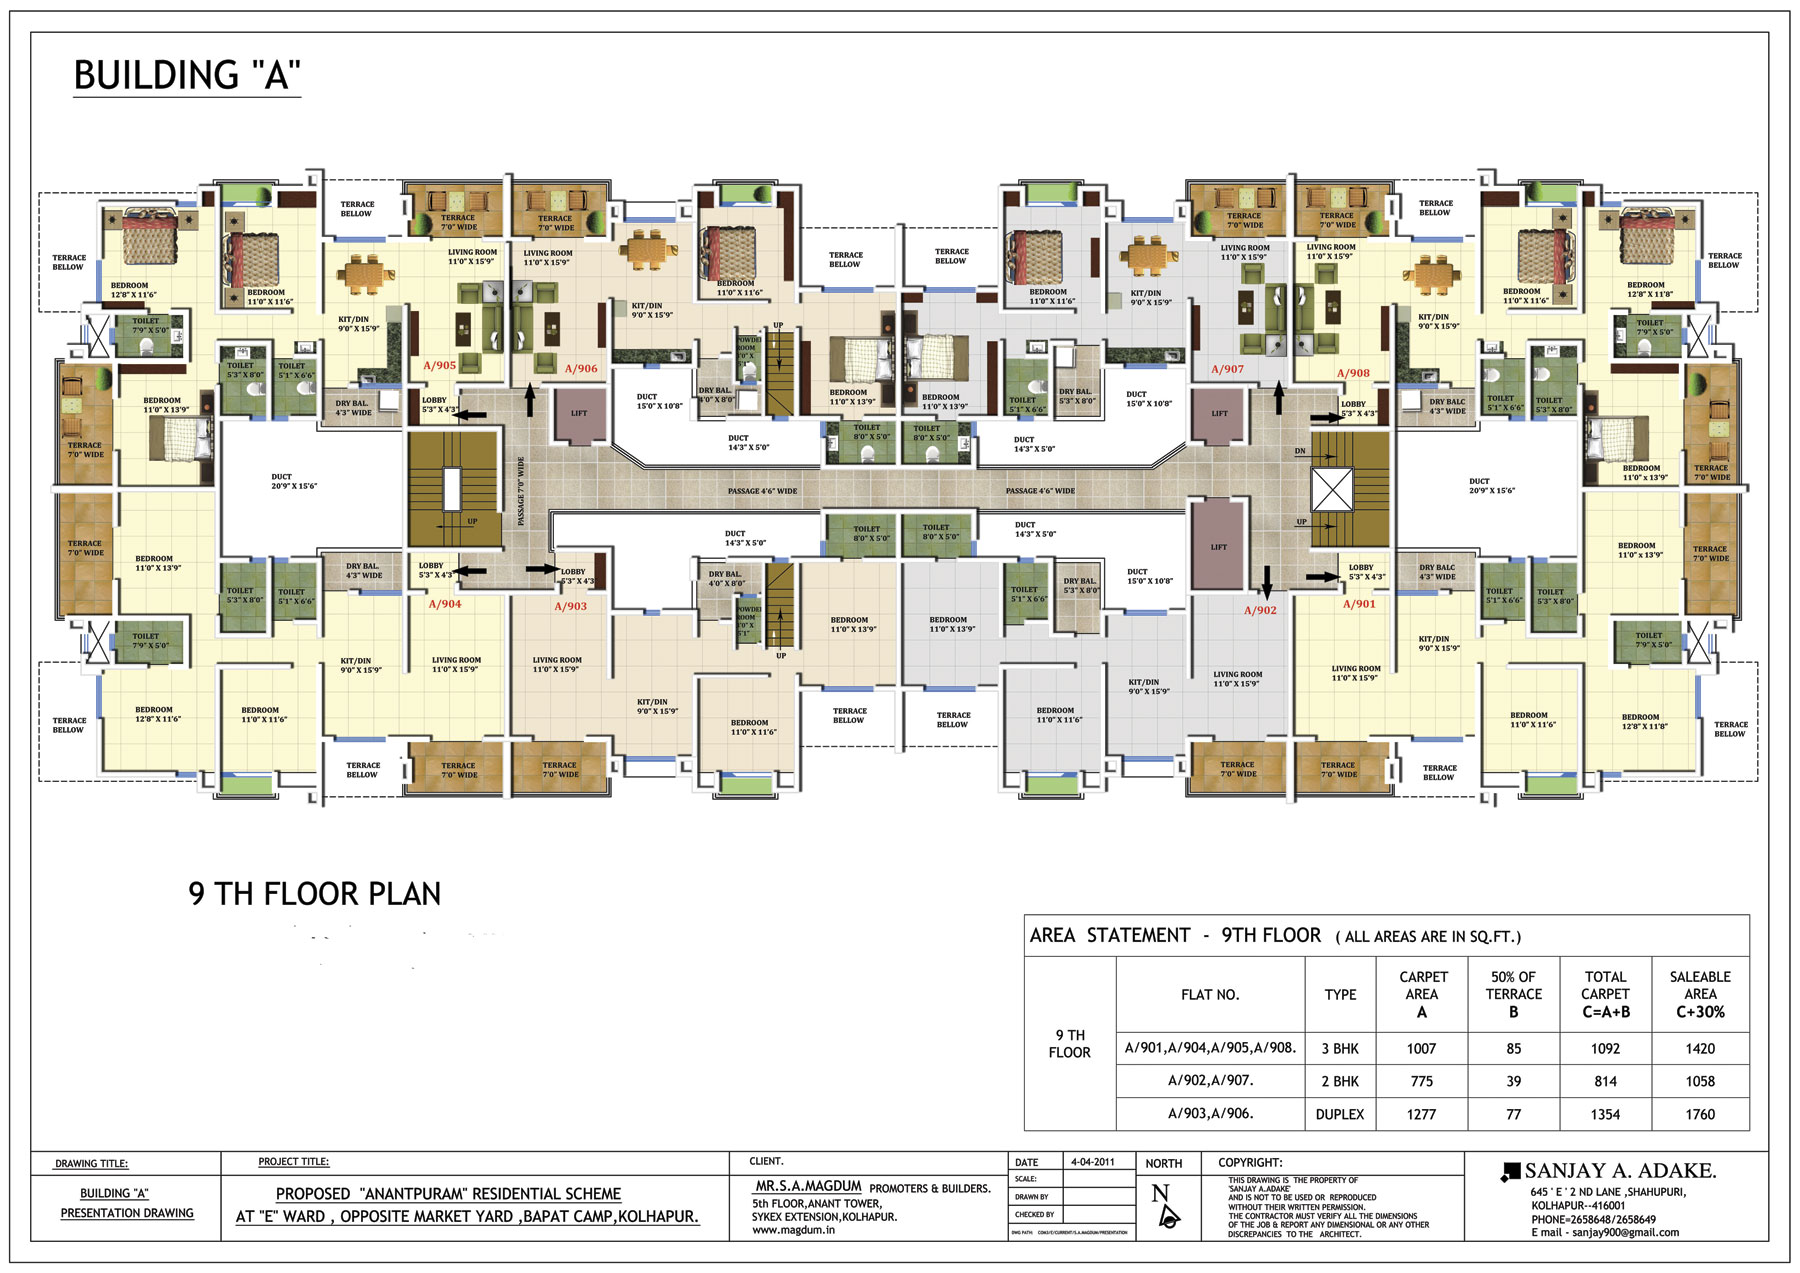 234 BHK Flats Pent House In Bapat Camp Kolhapur